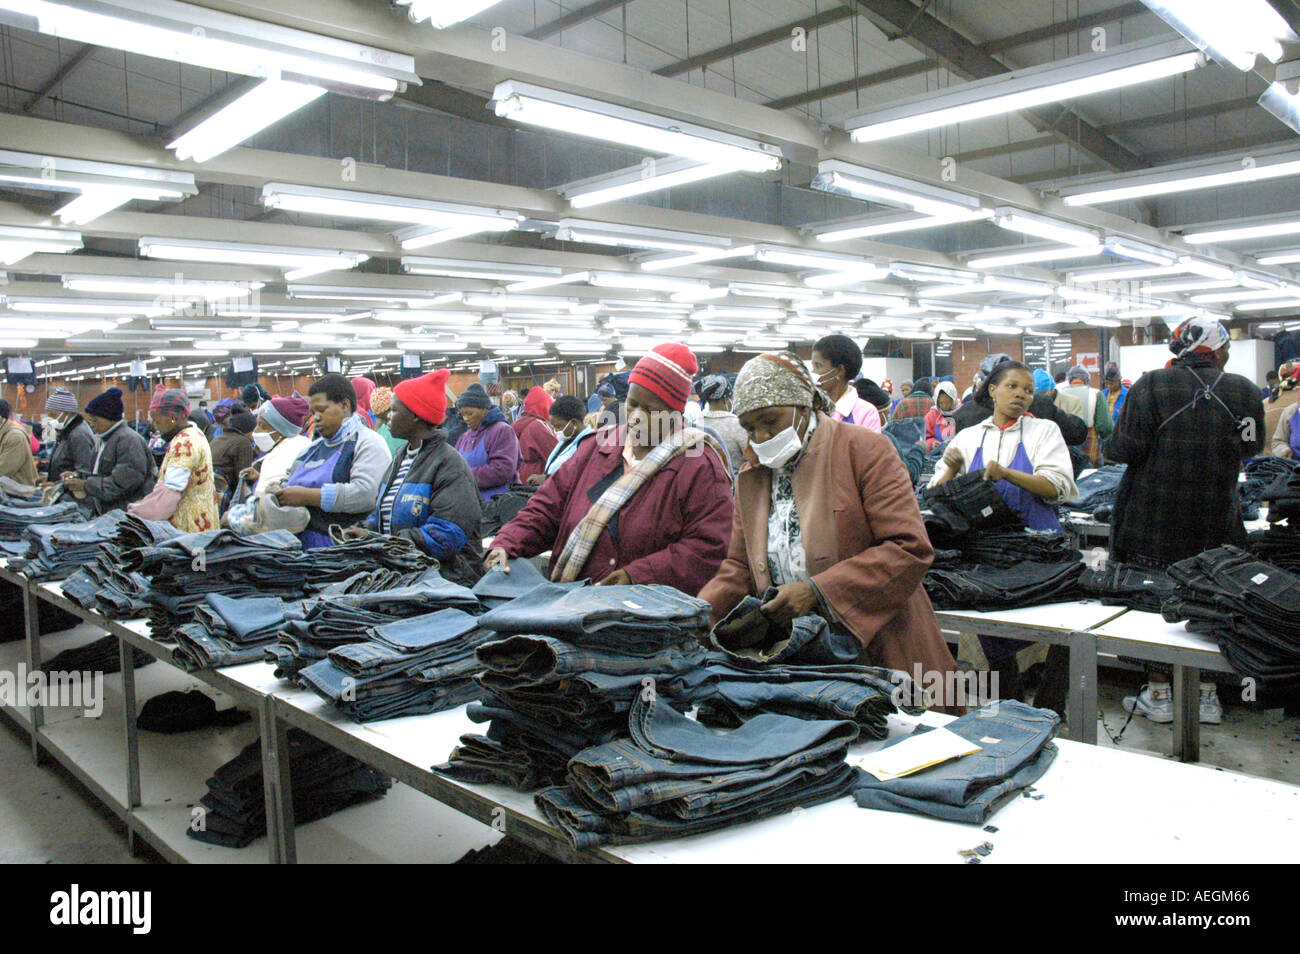 chinese clothing factory for making blue jeans in lesotho africa